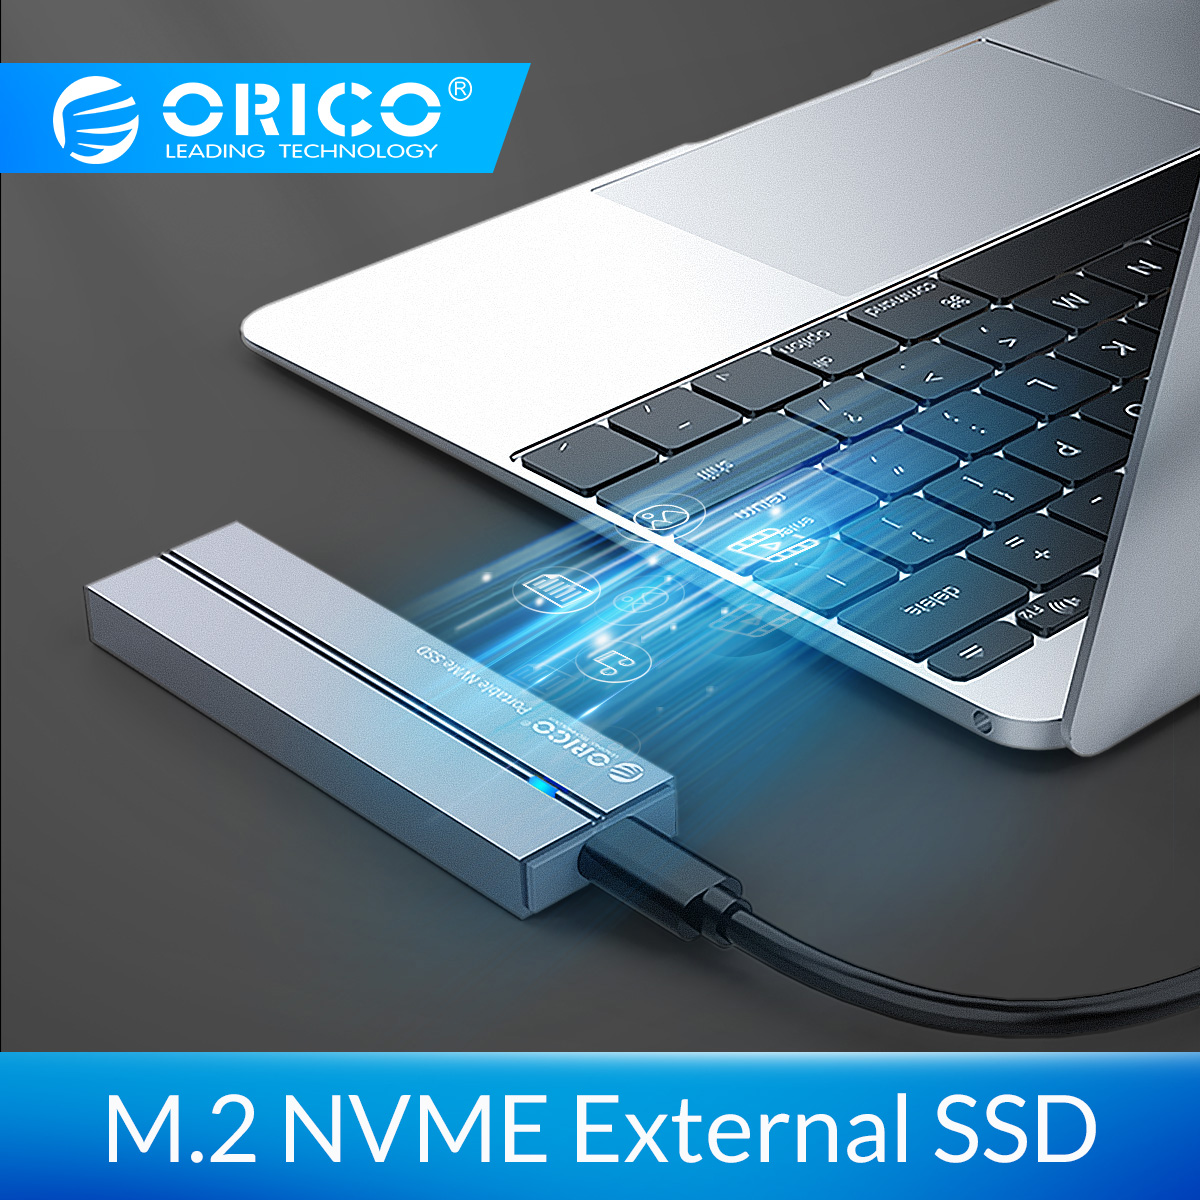 ORICO External SSD Hard Drive 1TB 128GB 256GB 512GB SATA MSATA NVME Portable SSD External Solid State Drive With Type C USB 3.1